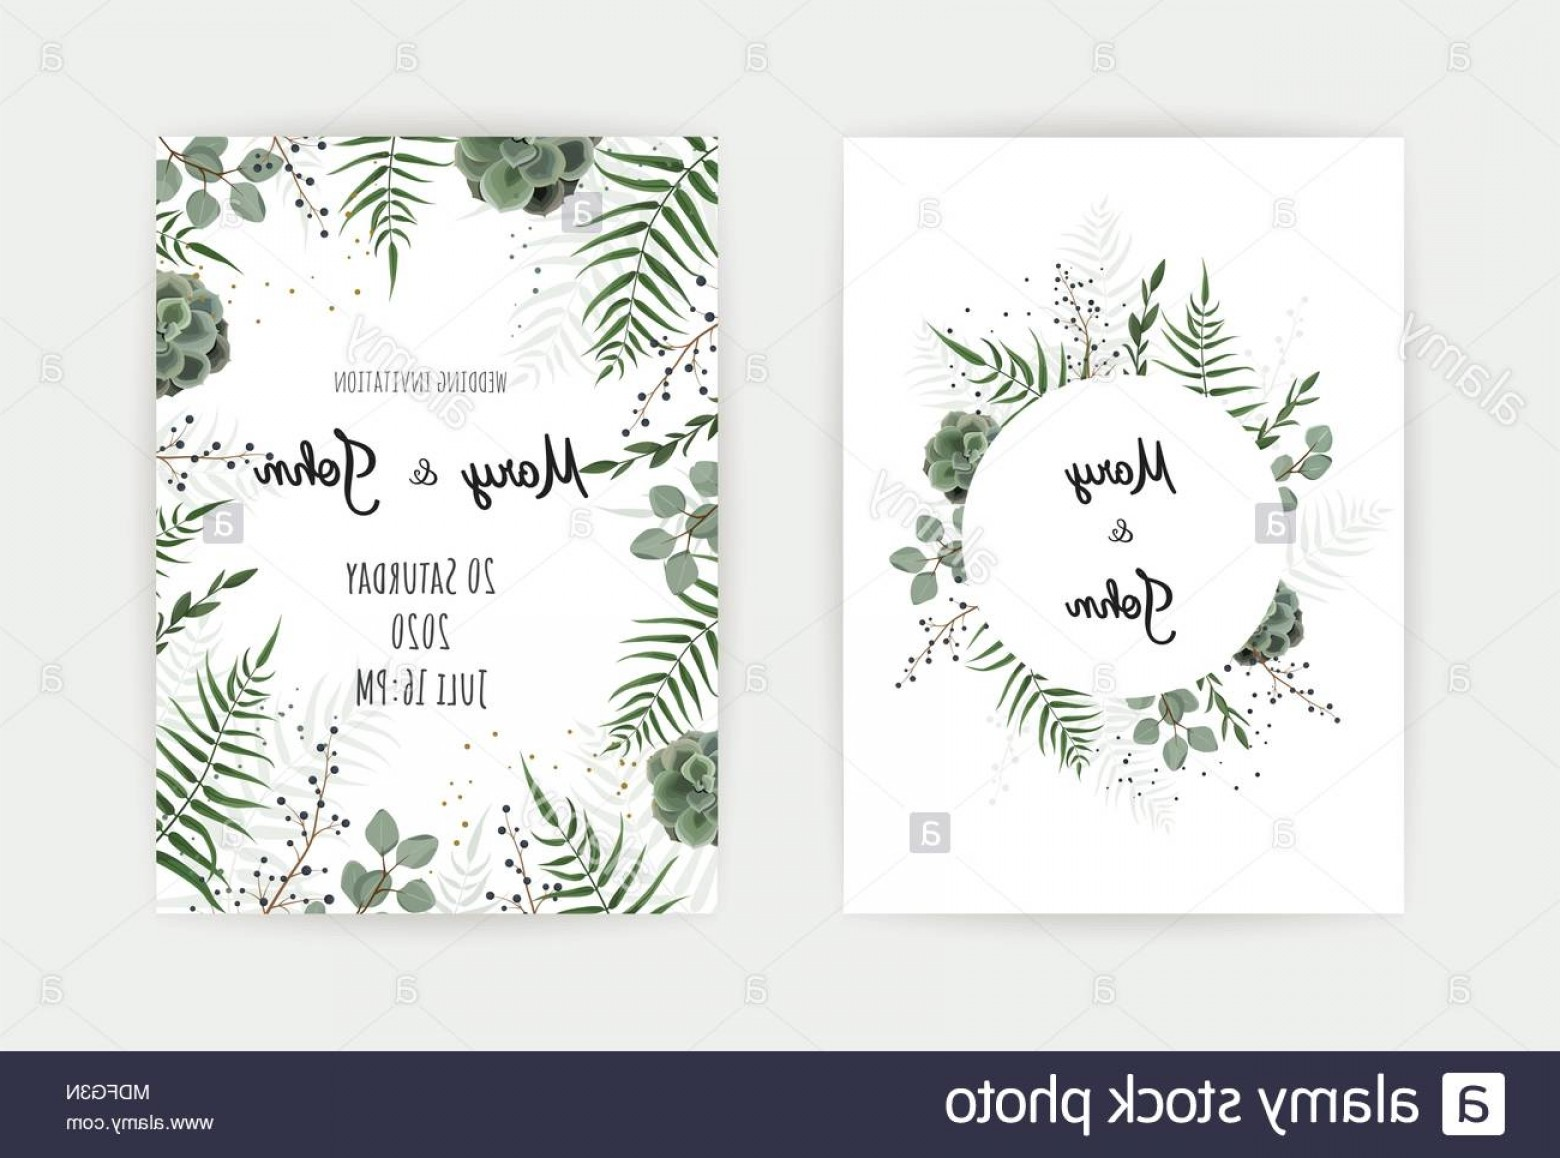 Rustic Wedding Invitation Vector: Wedding Invitation With Green Leaf Eucalyptus Branches Decorative Wreath Frame Pattern Vector Elegant Watercolor Rustic Template Image